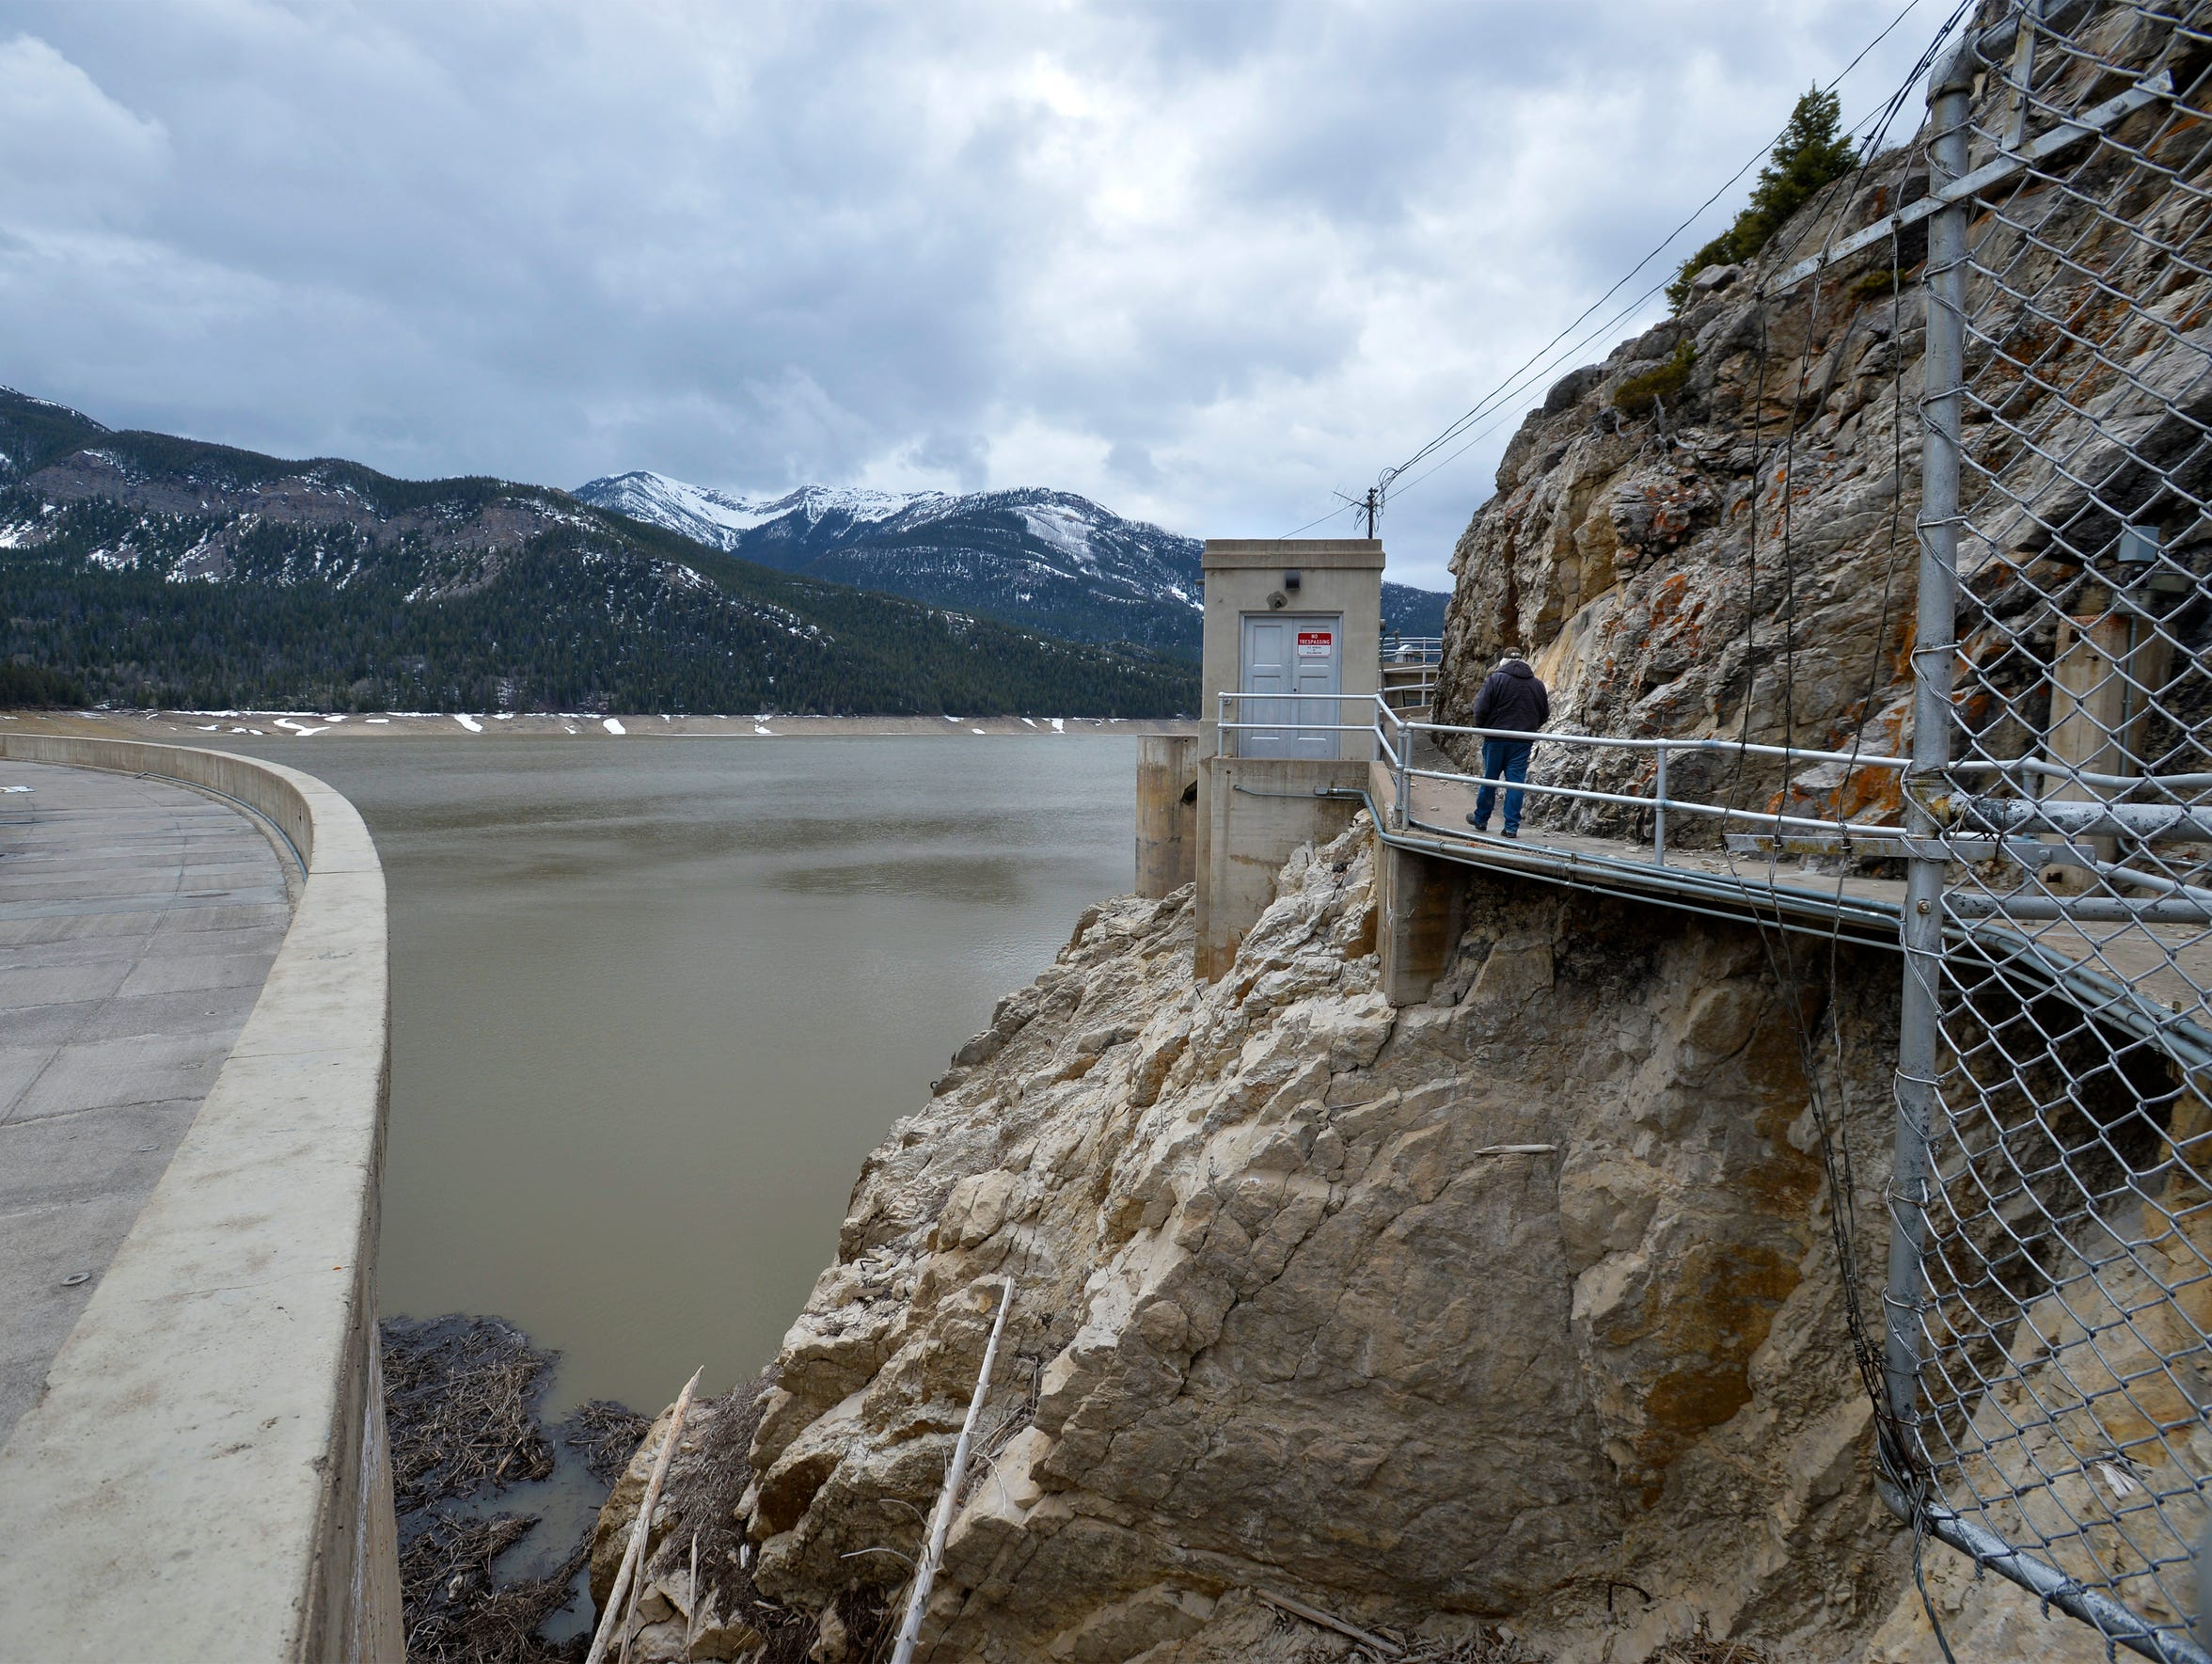 Paul Bergstrom, dam operator at Gibson Dam, walks to the generator house where controls are located for the spillway.